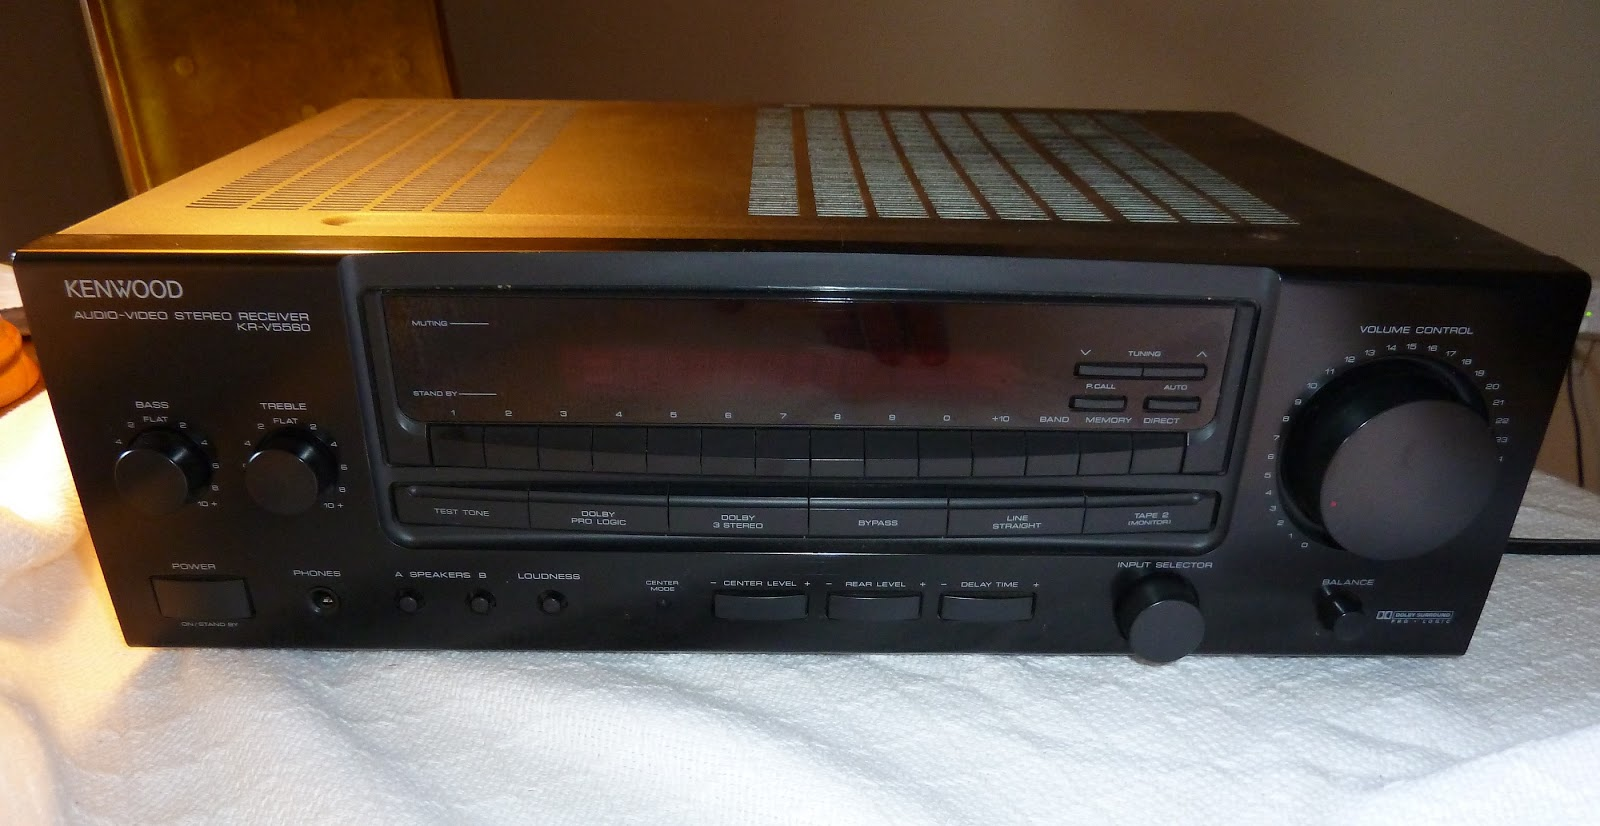 Saab 9 3 Cd Changer Wiring Diagram Get Free Image About For Kenwood Player